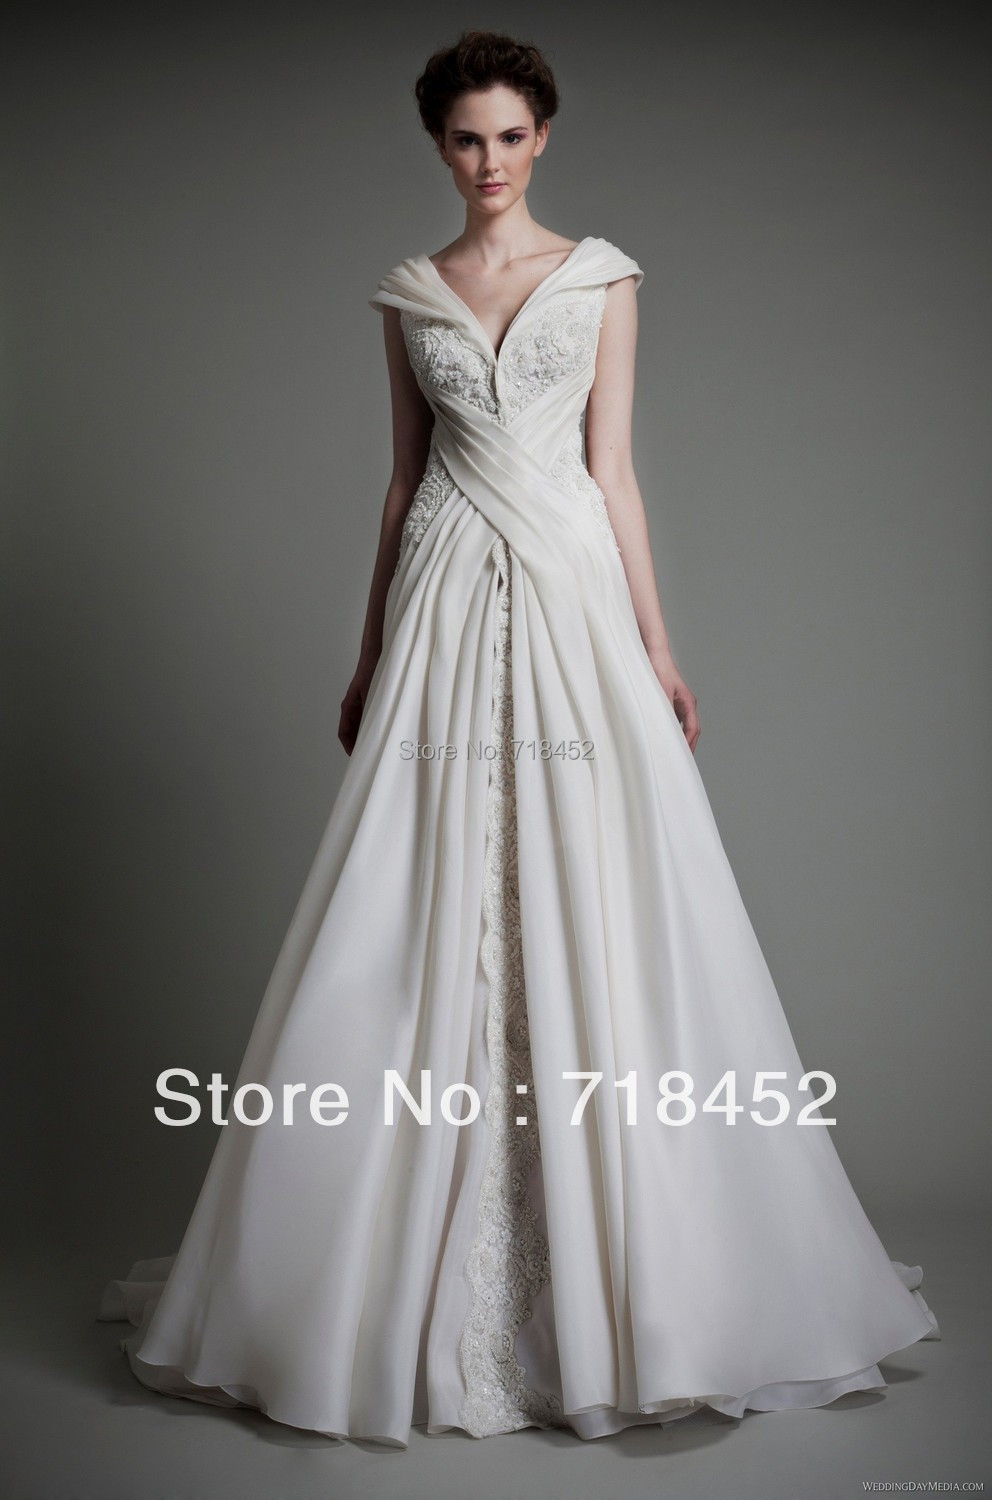 Beautiful cinderella style wedding dresses pictures for New wedding dress styles